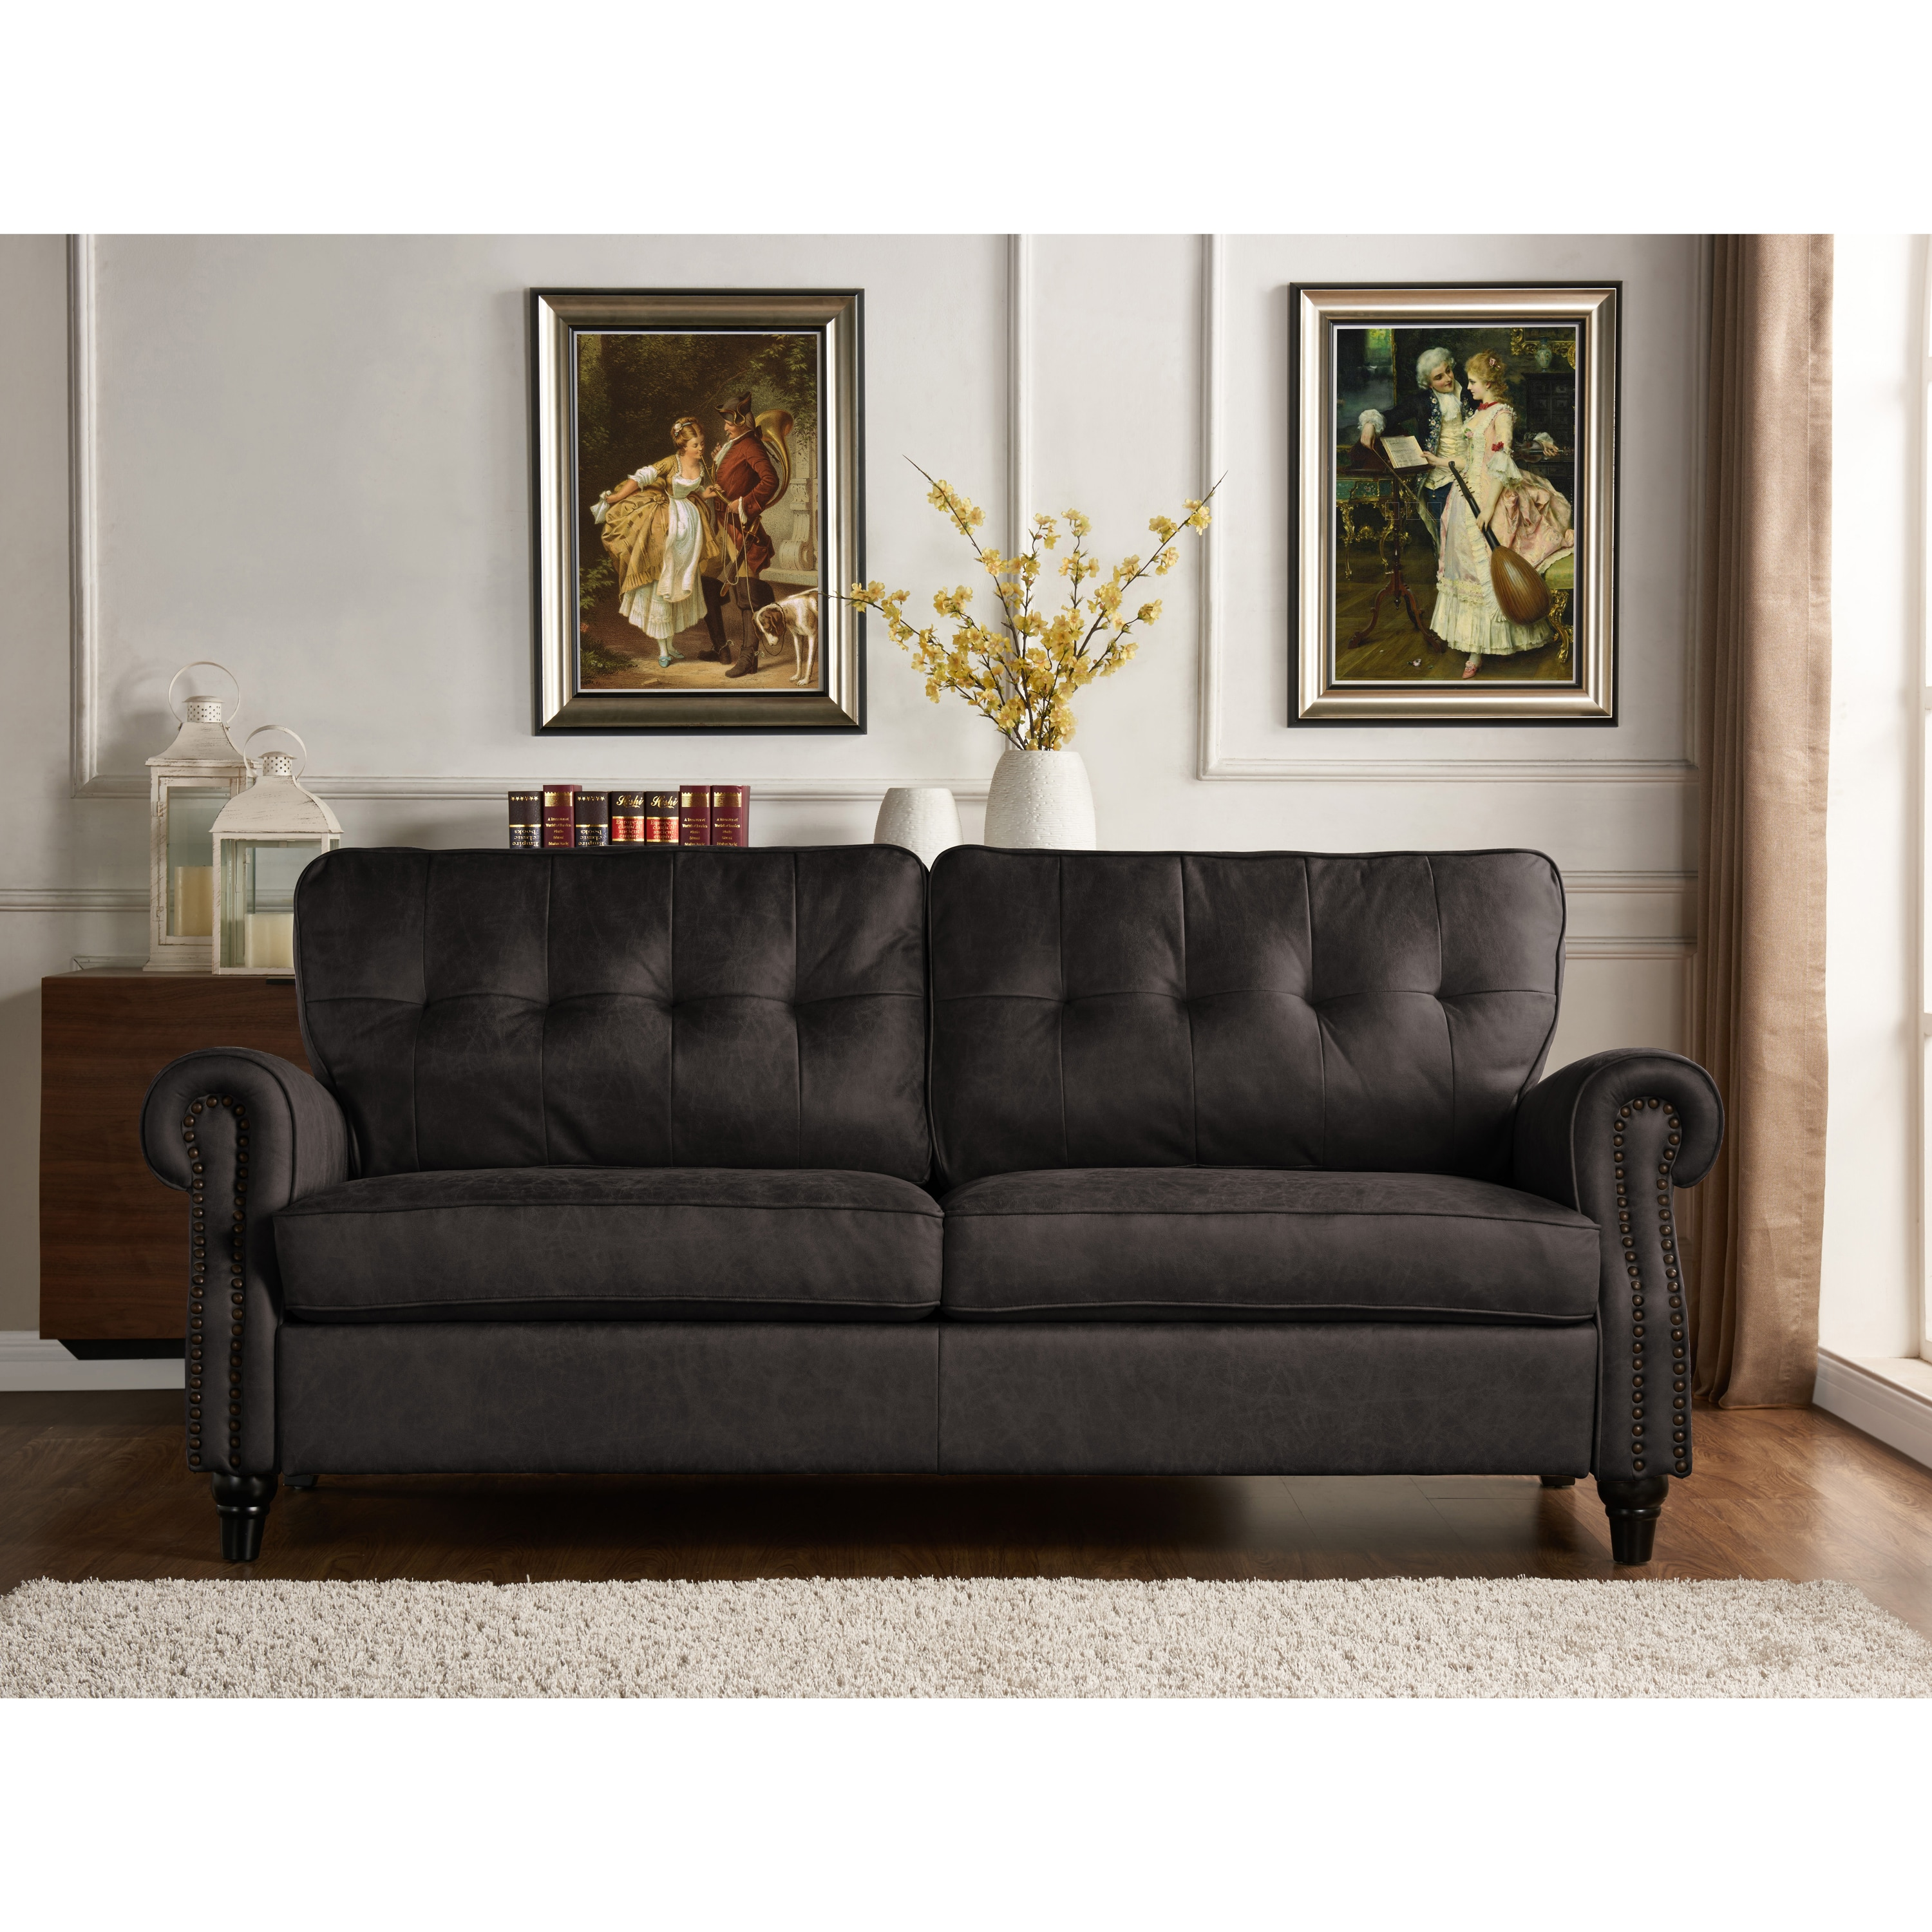 Grey Three Seater Sofa Bed In Brown Or Grey Air Leather Distressed Finish Faux Leather Couch Settee With Wood Detail Legs Sofas Couches Home Kitchen